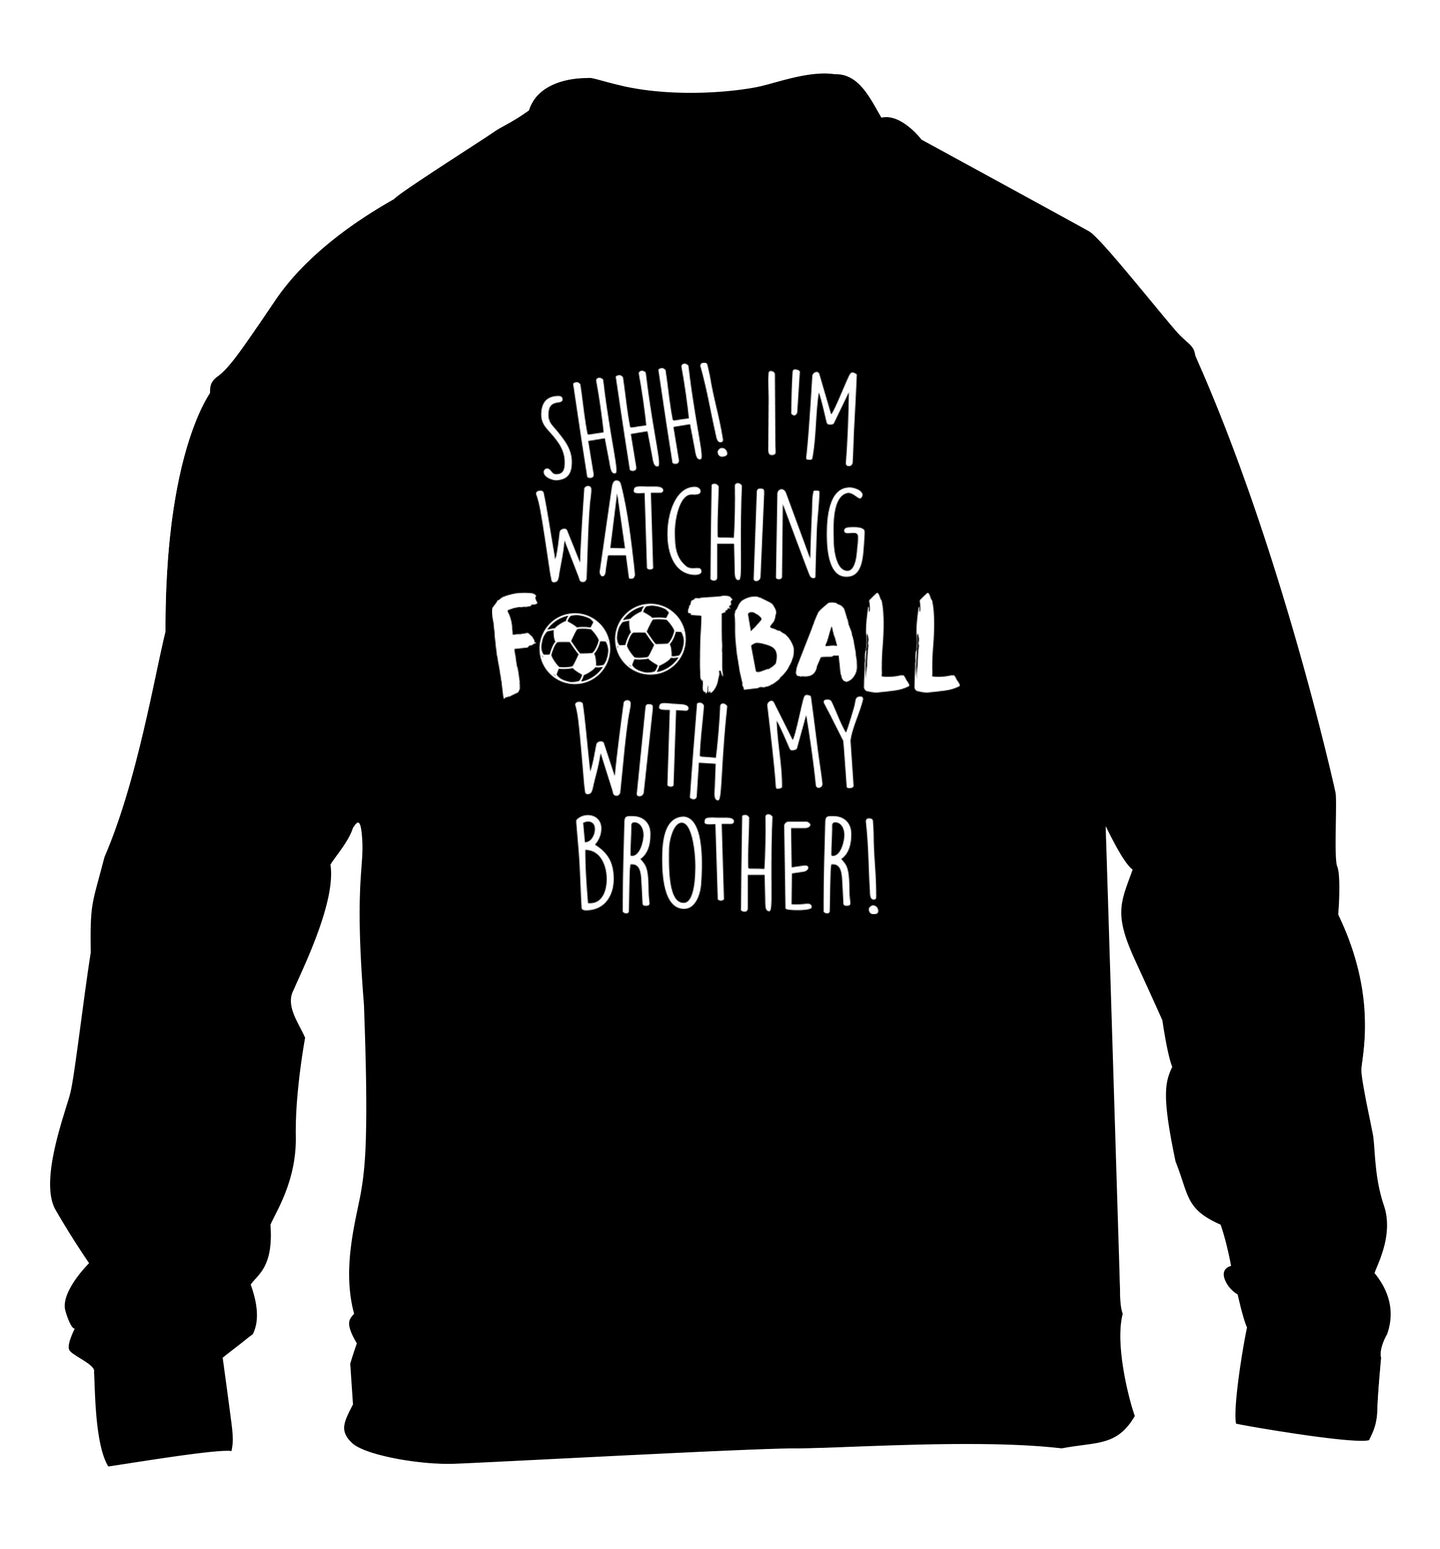 Shhh I'm watching football with my brother children's black sweater 12-14 Years